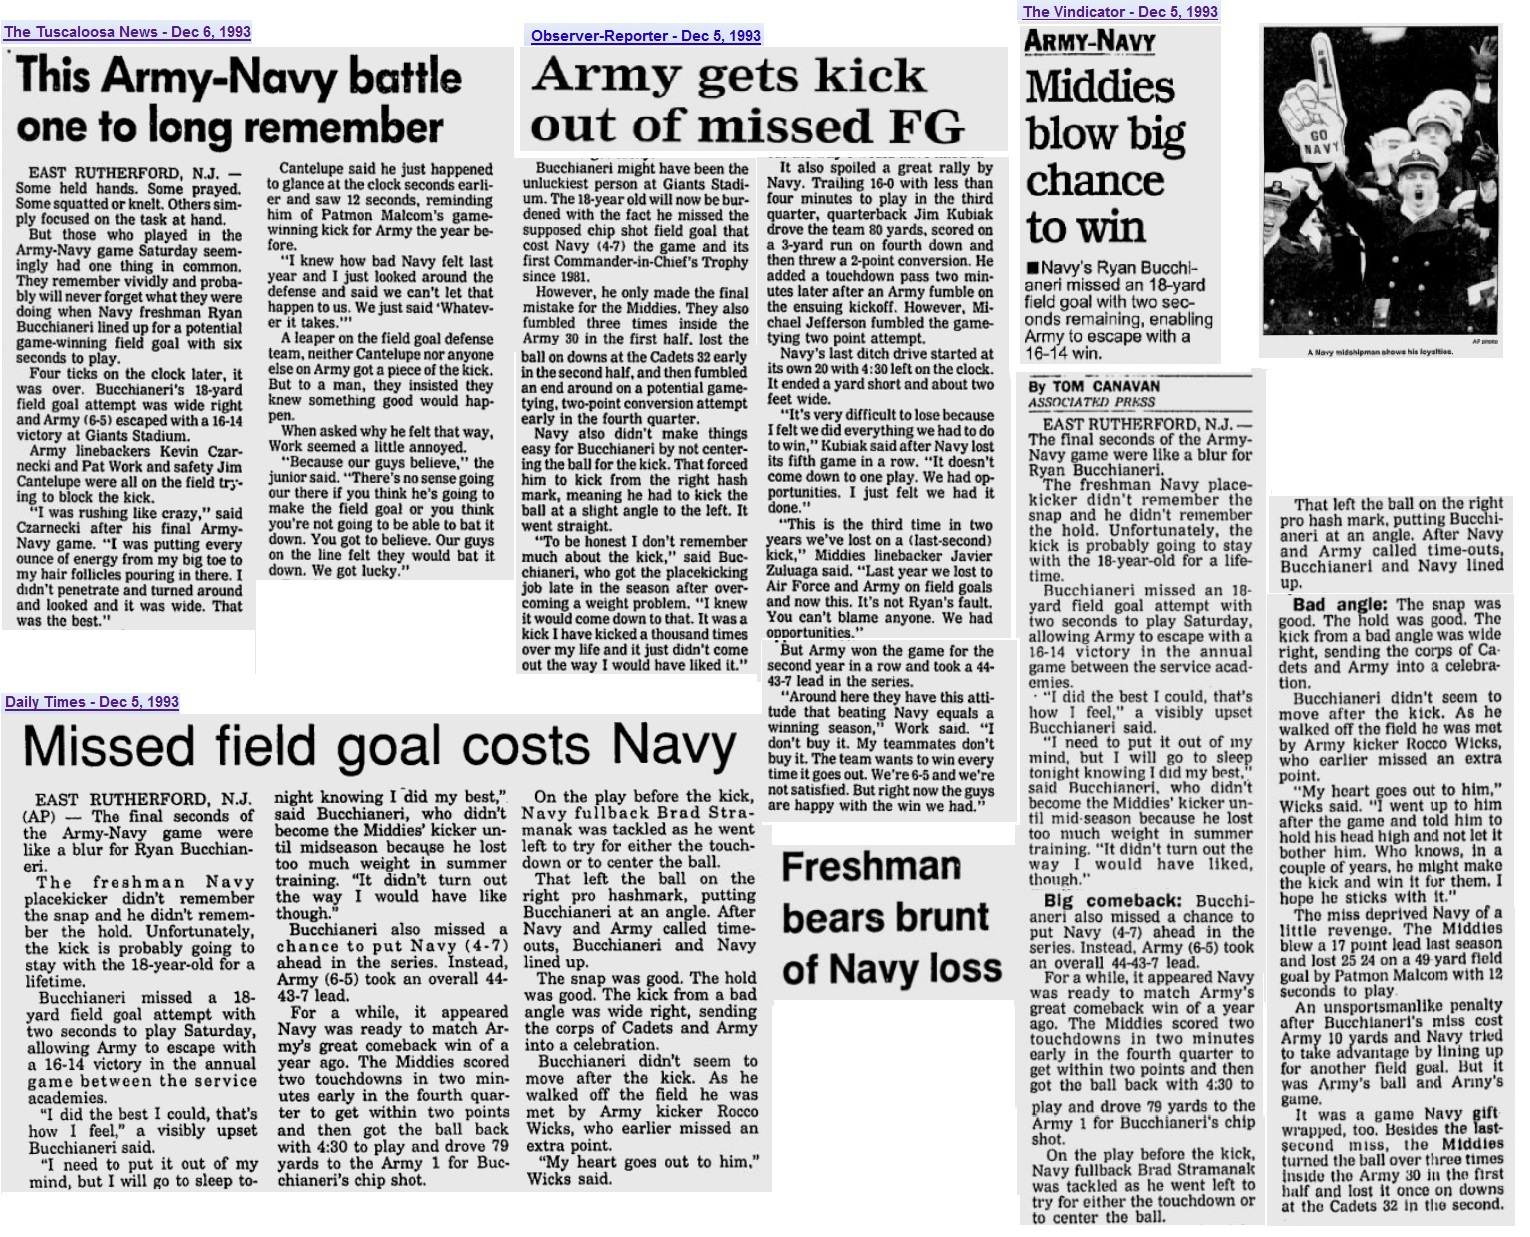 armyfb_1993_vsnavy_various_dec1993